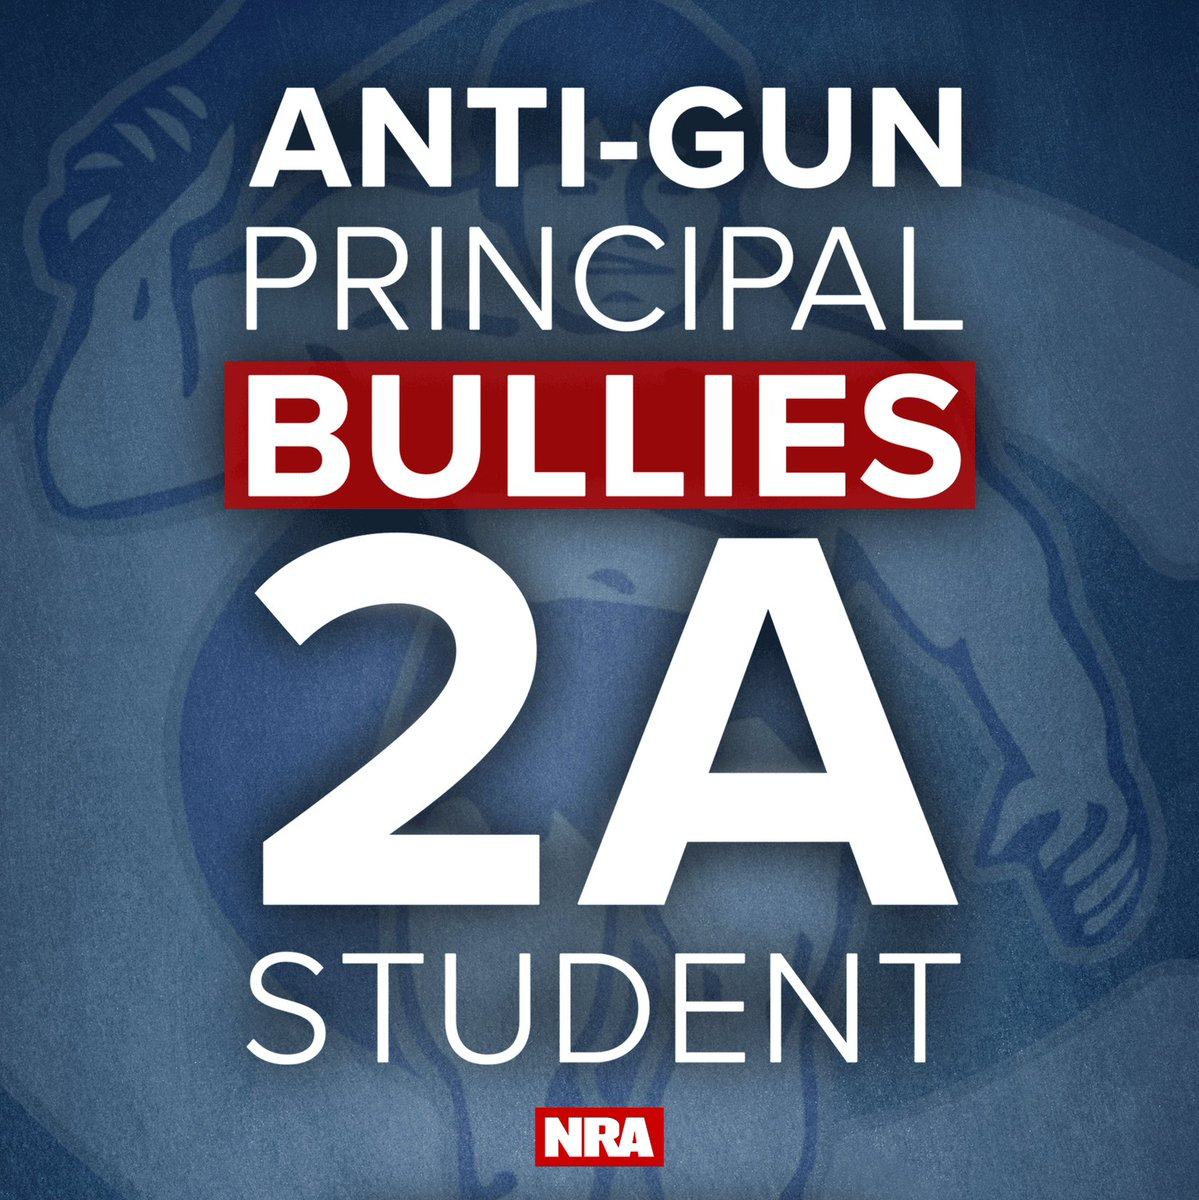 Principal Adam García Amador of #CarlsbadHighSchool in #Carlsbad, NM allegedly told student that the #2A is not even a part of the #BillofRights, and brought in five police officers in an attempt at intimidation. For more on this article: bit.ly/2MGw904